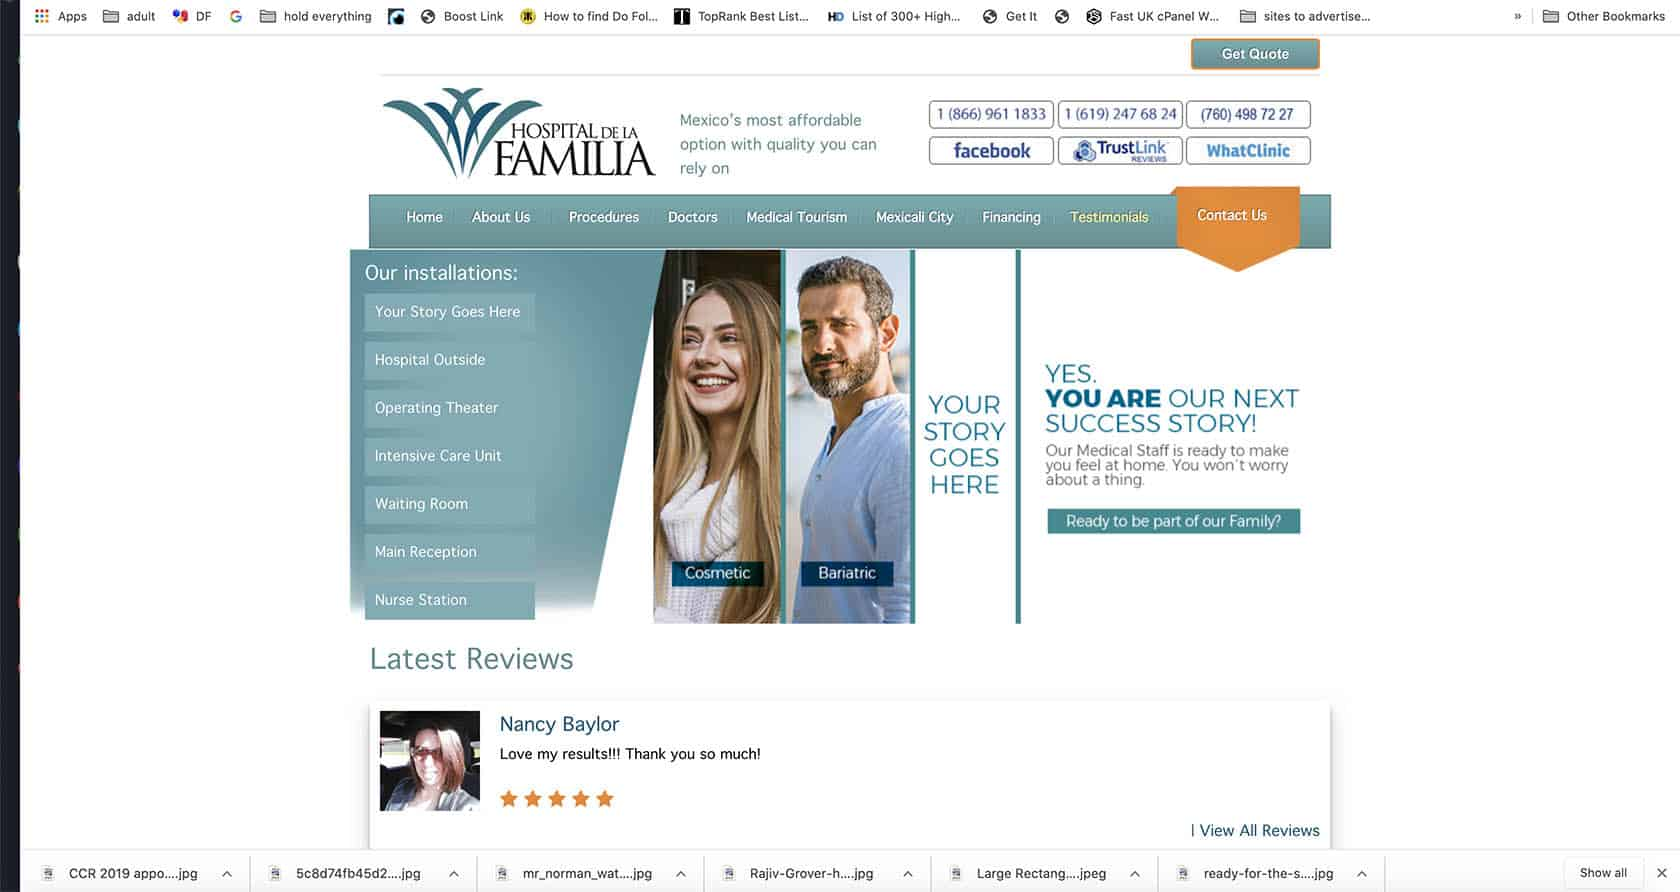 Hospital de la familia. Mexico - Best Cosmetic Surgery Clinics In Mexico